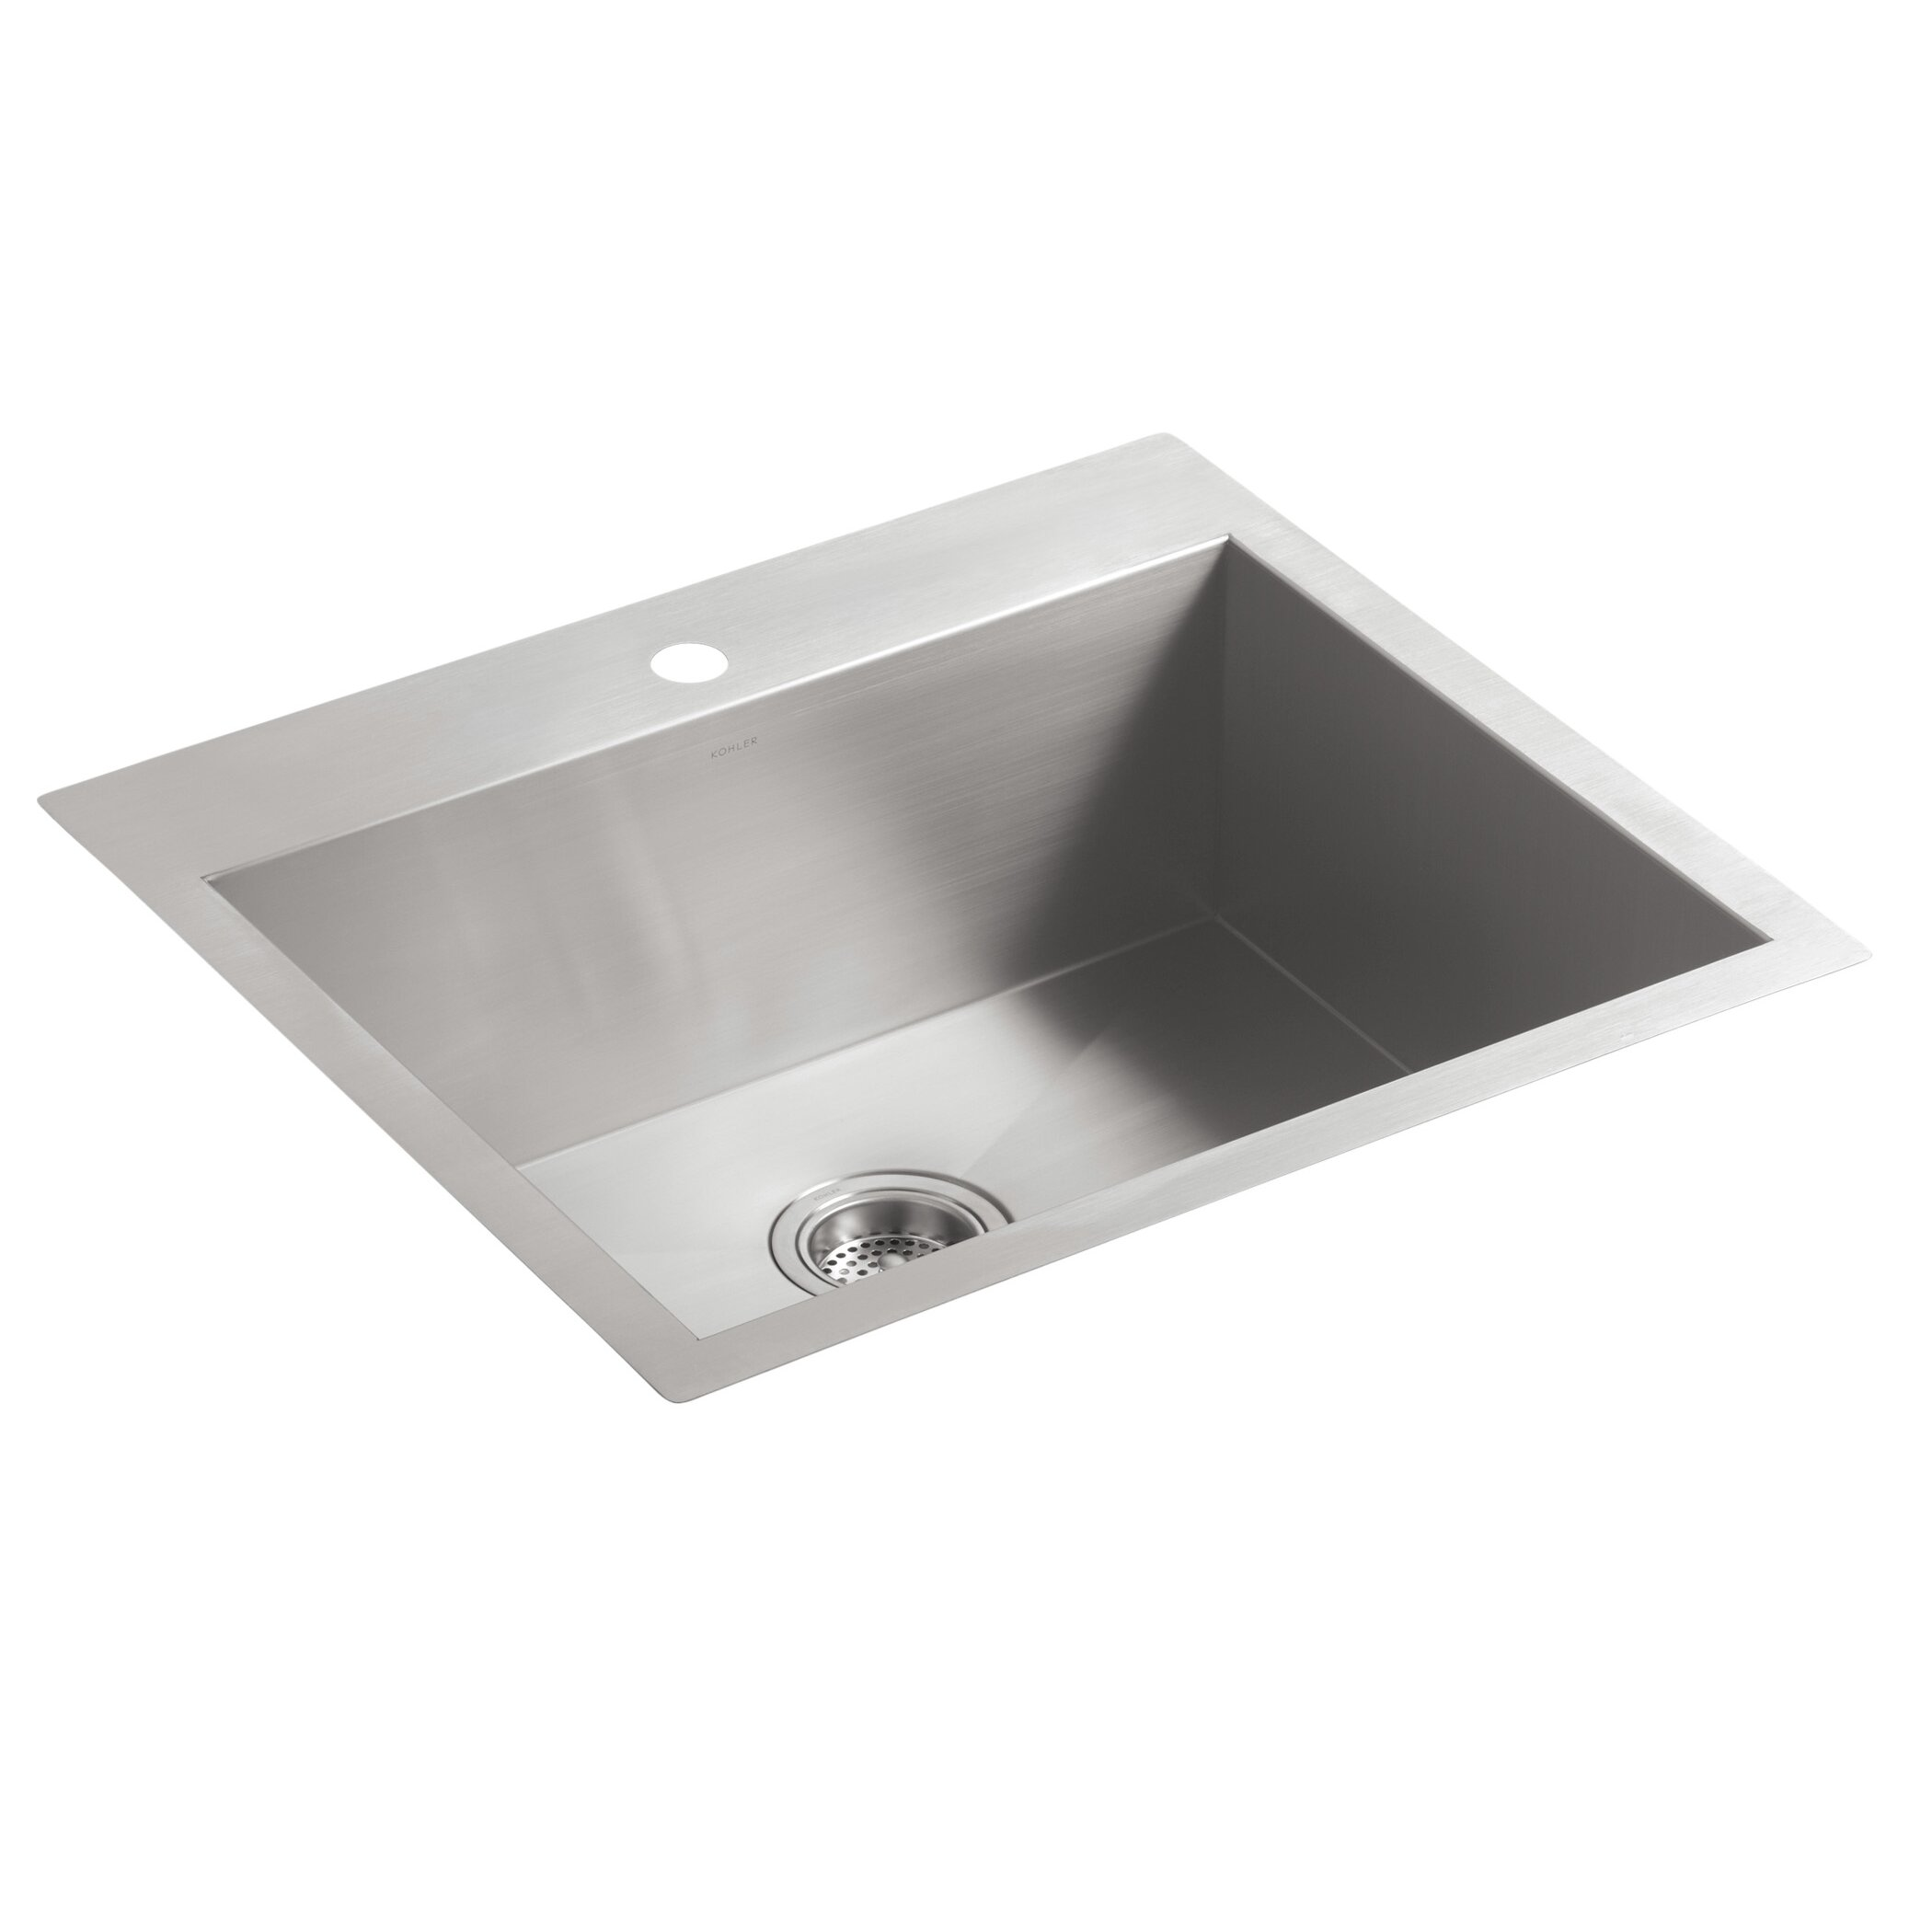 White Kitchen Sink Undermount Kohler Vault 25 X 22 X 931 Top Mount Under Mount Medium Single